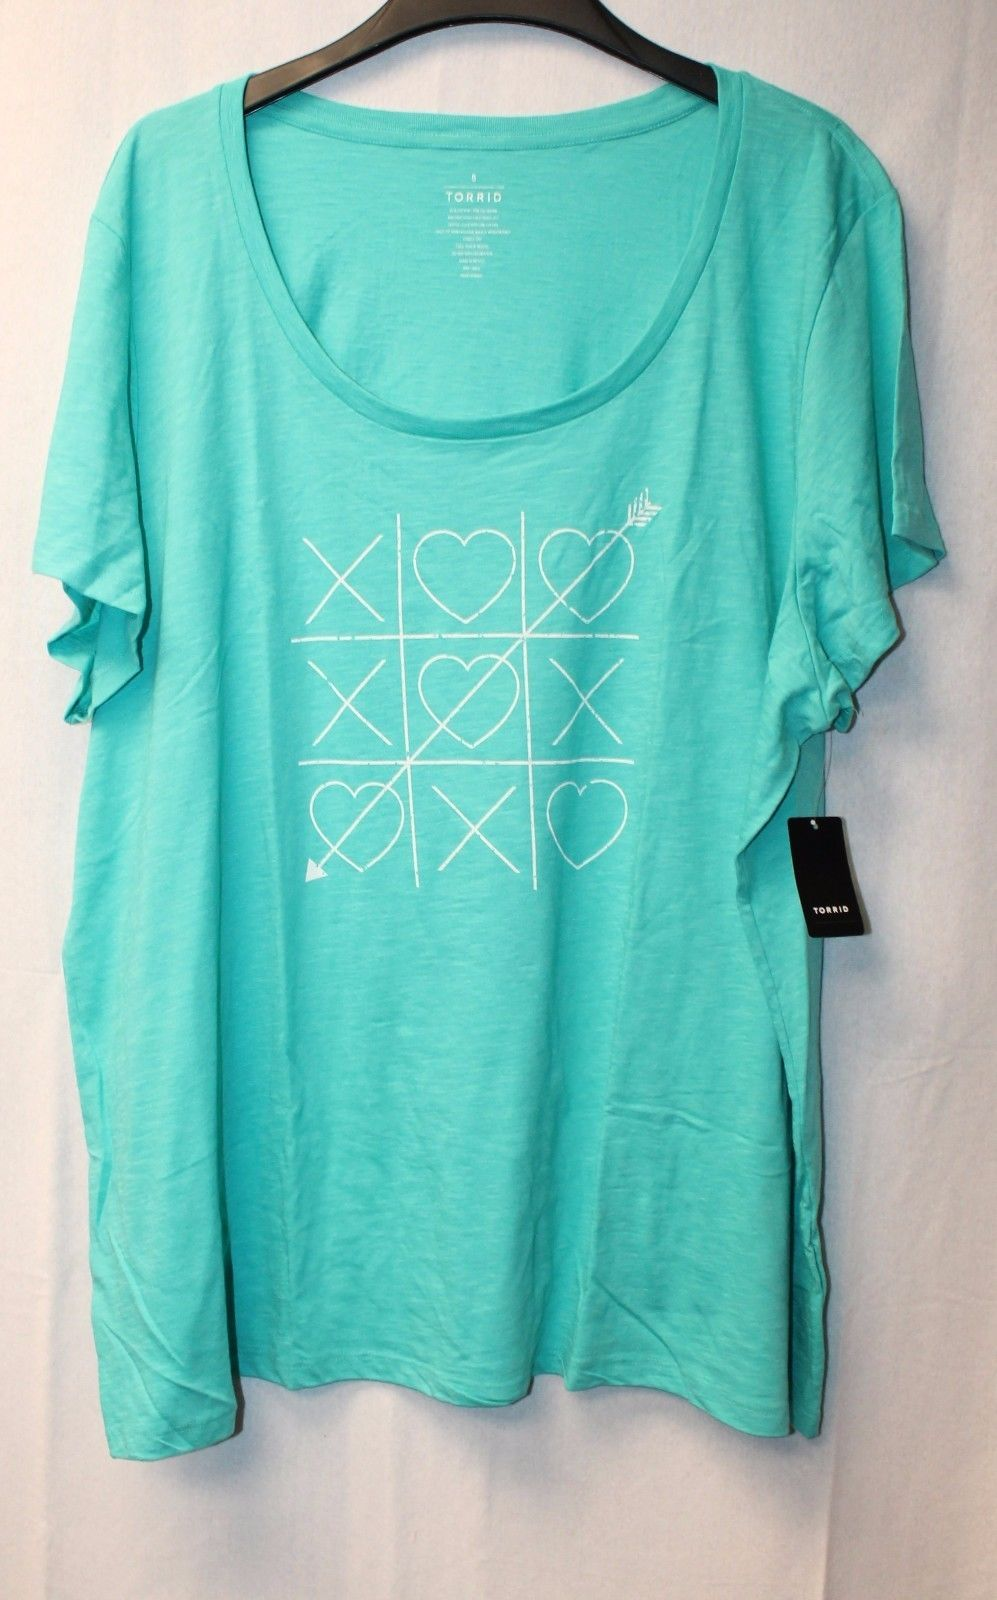 14b0d471dbd New Torrid Womens Plus Size 5X 5 Turquoise and 50 similar items. 57